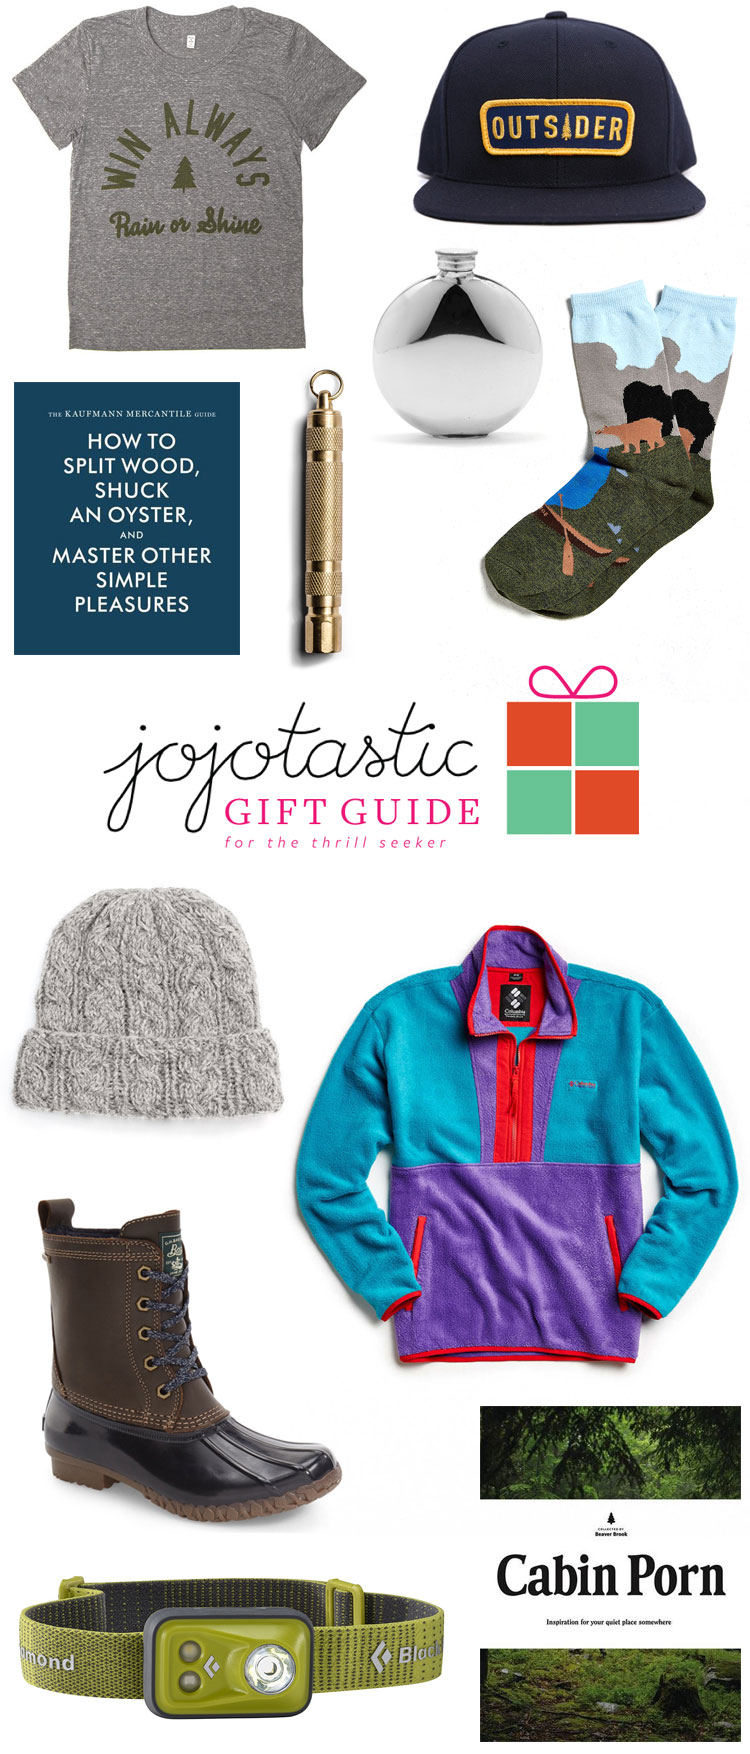 the ultimate gift guide for the thrill seeker / adventurer —great gift ideas for this holiday season for the outdoorsy type. find more gift ideas on Jojotastic.com